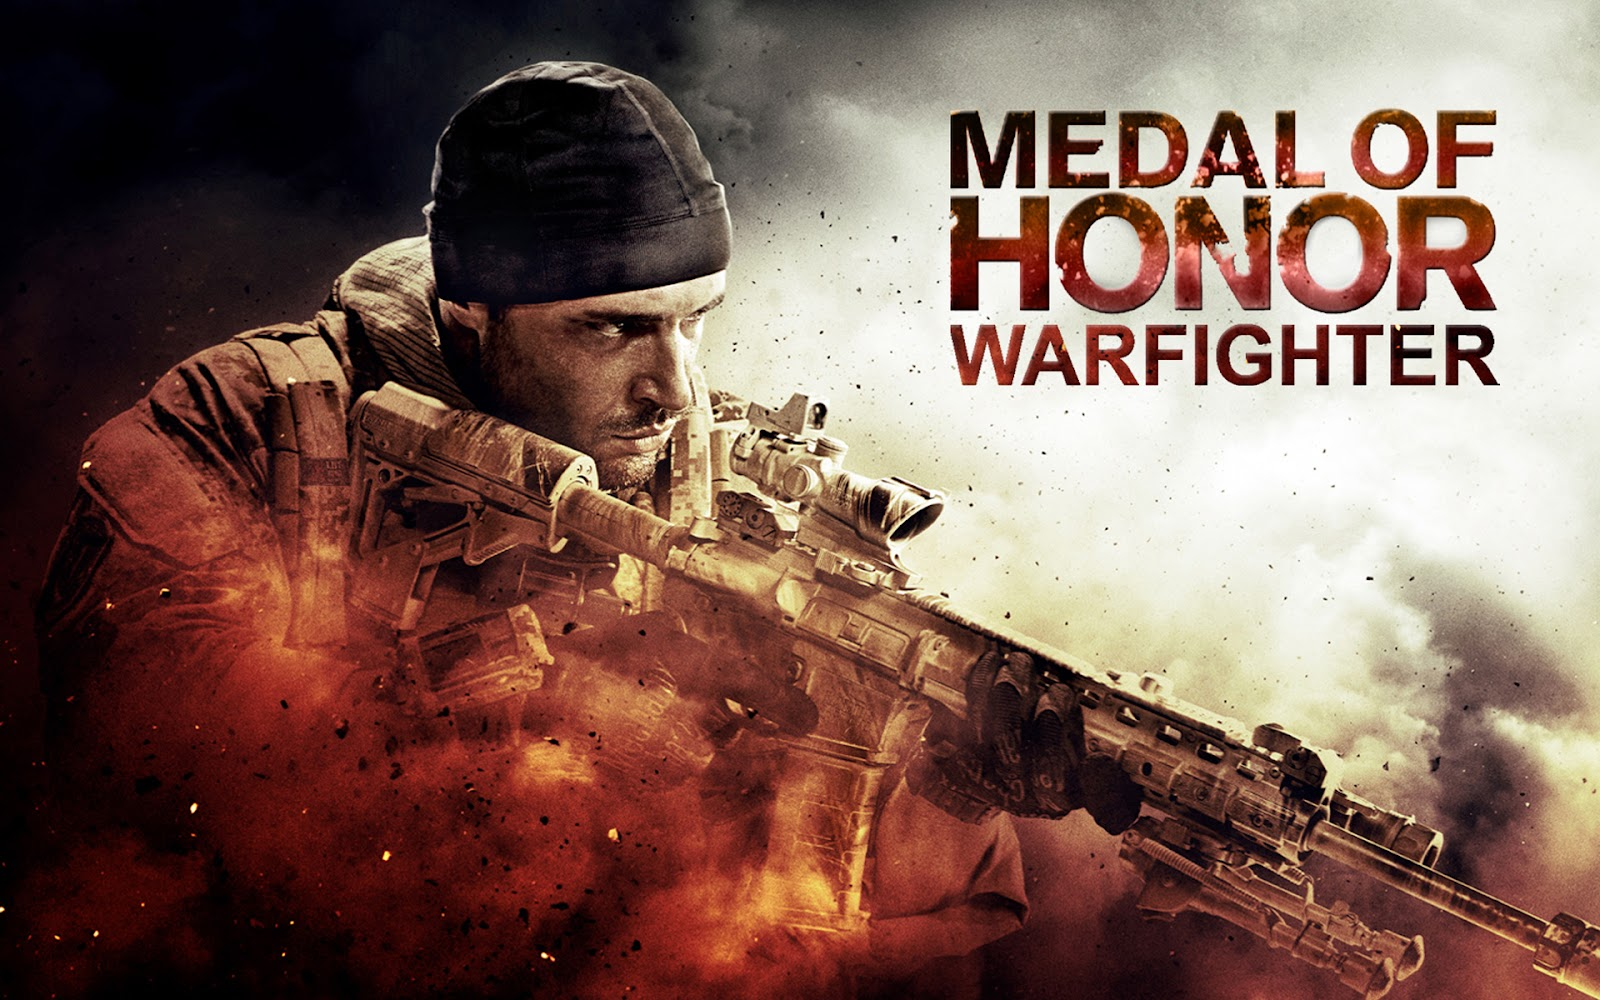 http://1.bp.blogspot.com/-VYkLs9tEOis/UWGvMEtKSRI/AAAAAAAAP2o/nM-QzIb5RgI/s1600/Medal+of+Honor+-+Warfighter+Wallpapers+%25285%2529.jpg